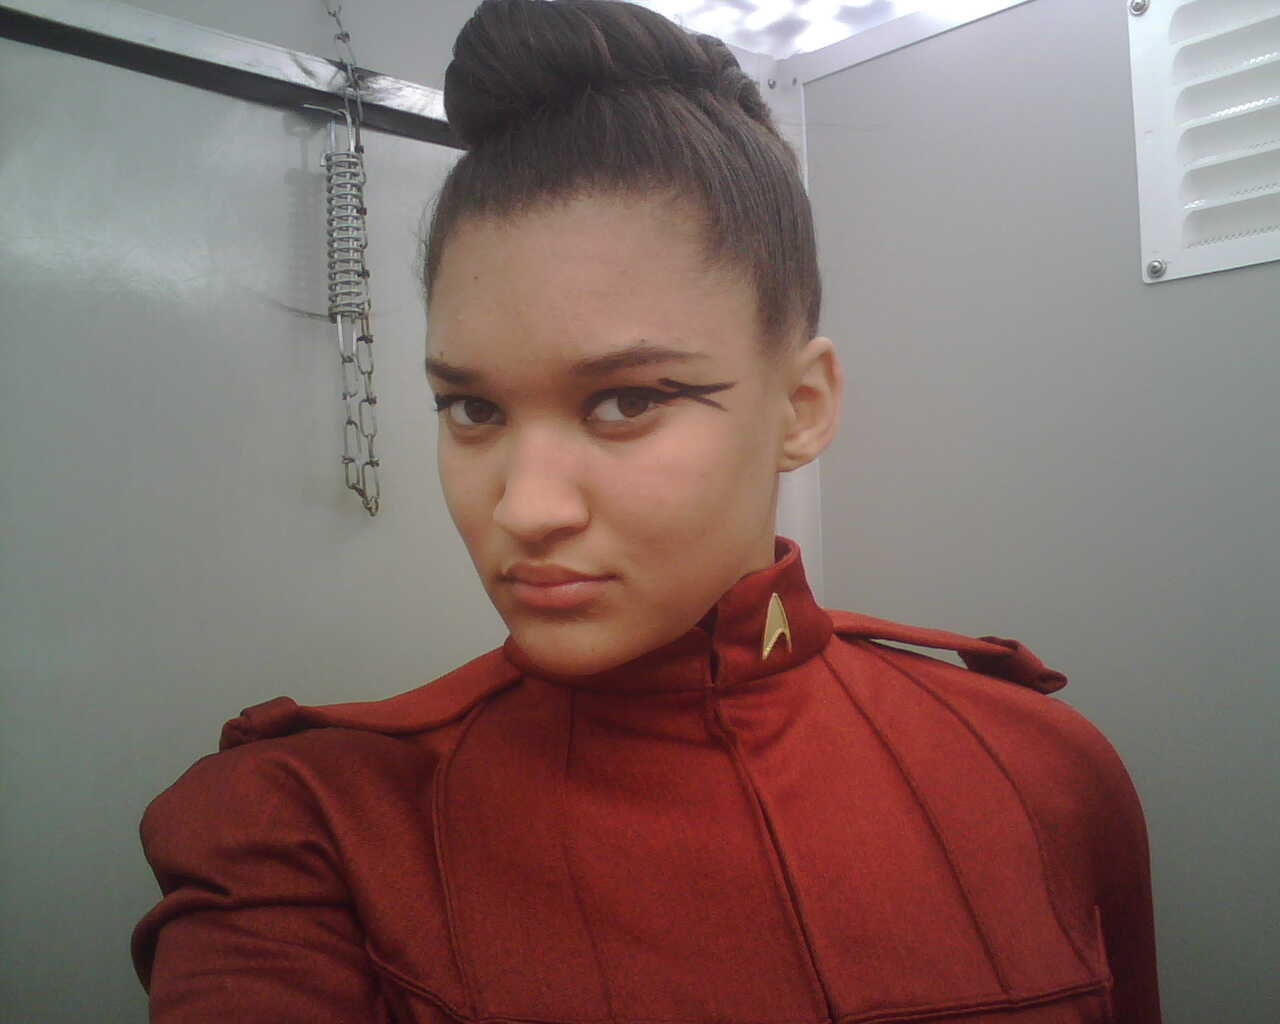 Etalvia as Star Trek Cadet